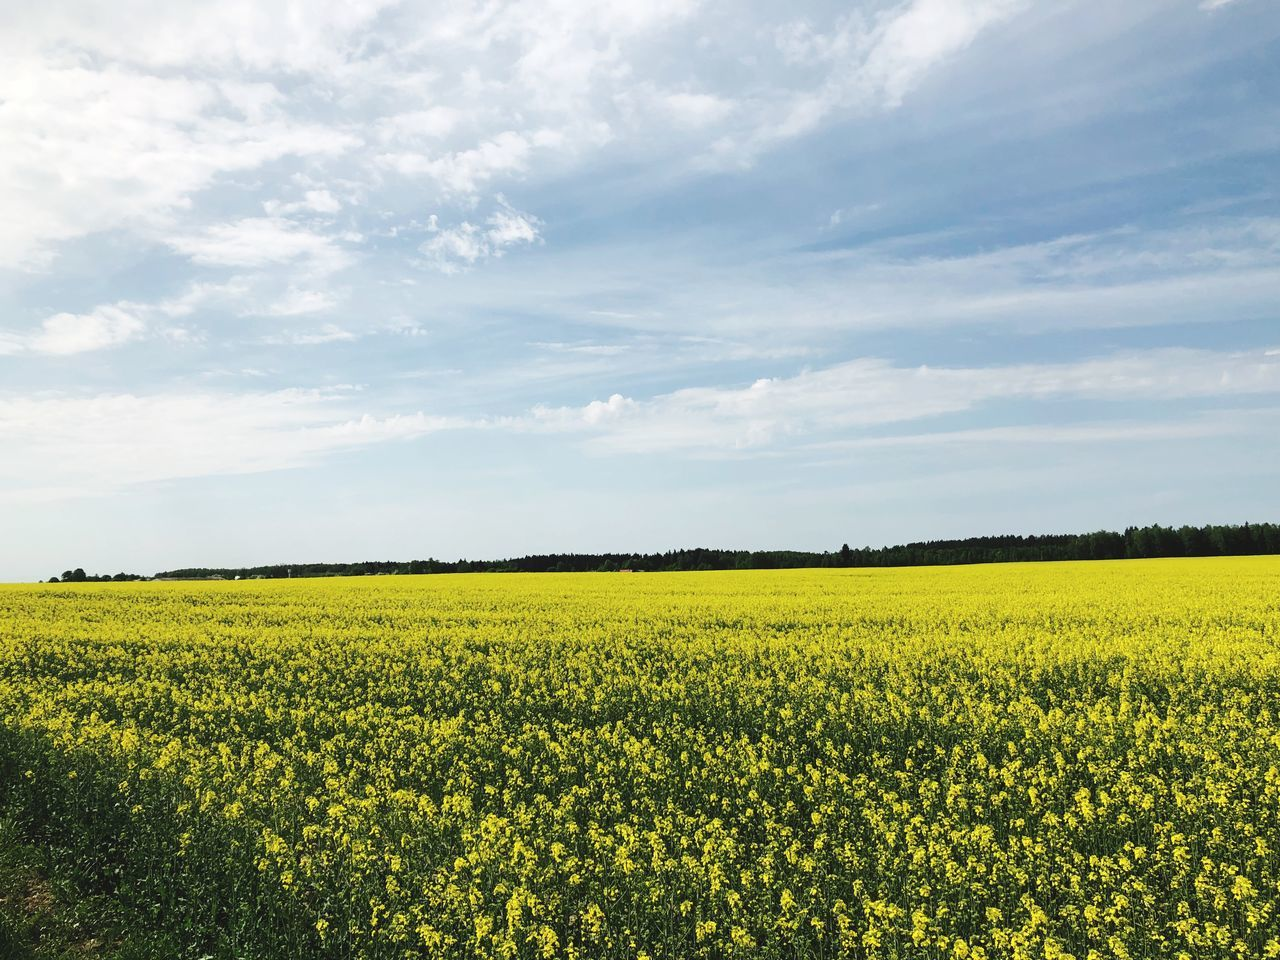 yellow, landscape, beauty in nature, field, flower, land, cloud - sky, sky, agriculture, rural scene, scenics - nature, flowering plant, tranquil scene, environment, oilseed rape, tranquility, growth, plant, crop, nature, farm, no people, outdoors, springtime